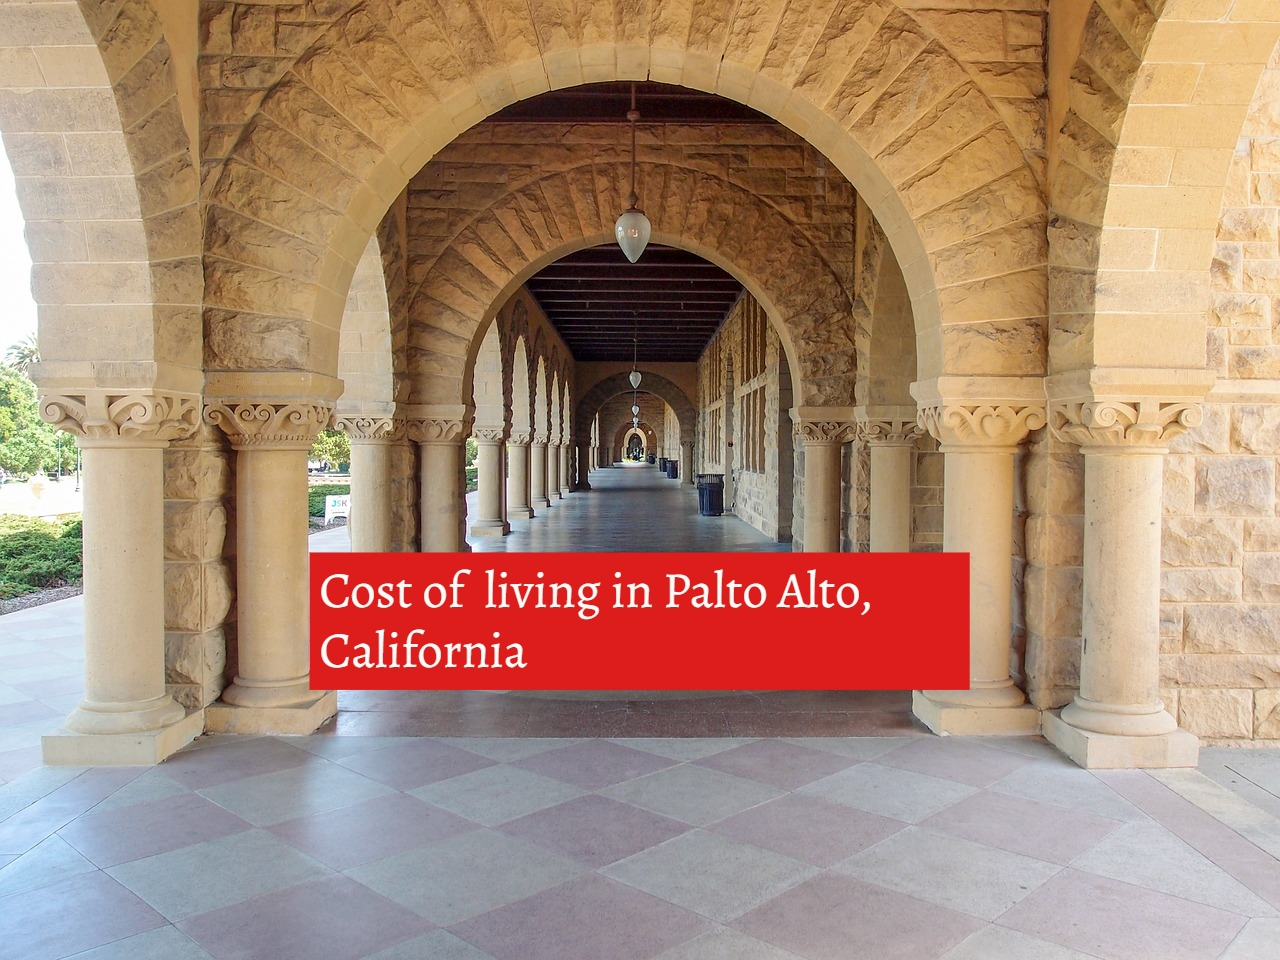 cost of living in Palto Alto, California-UTTD